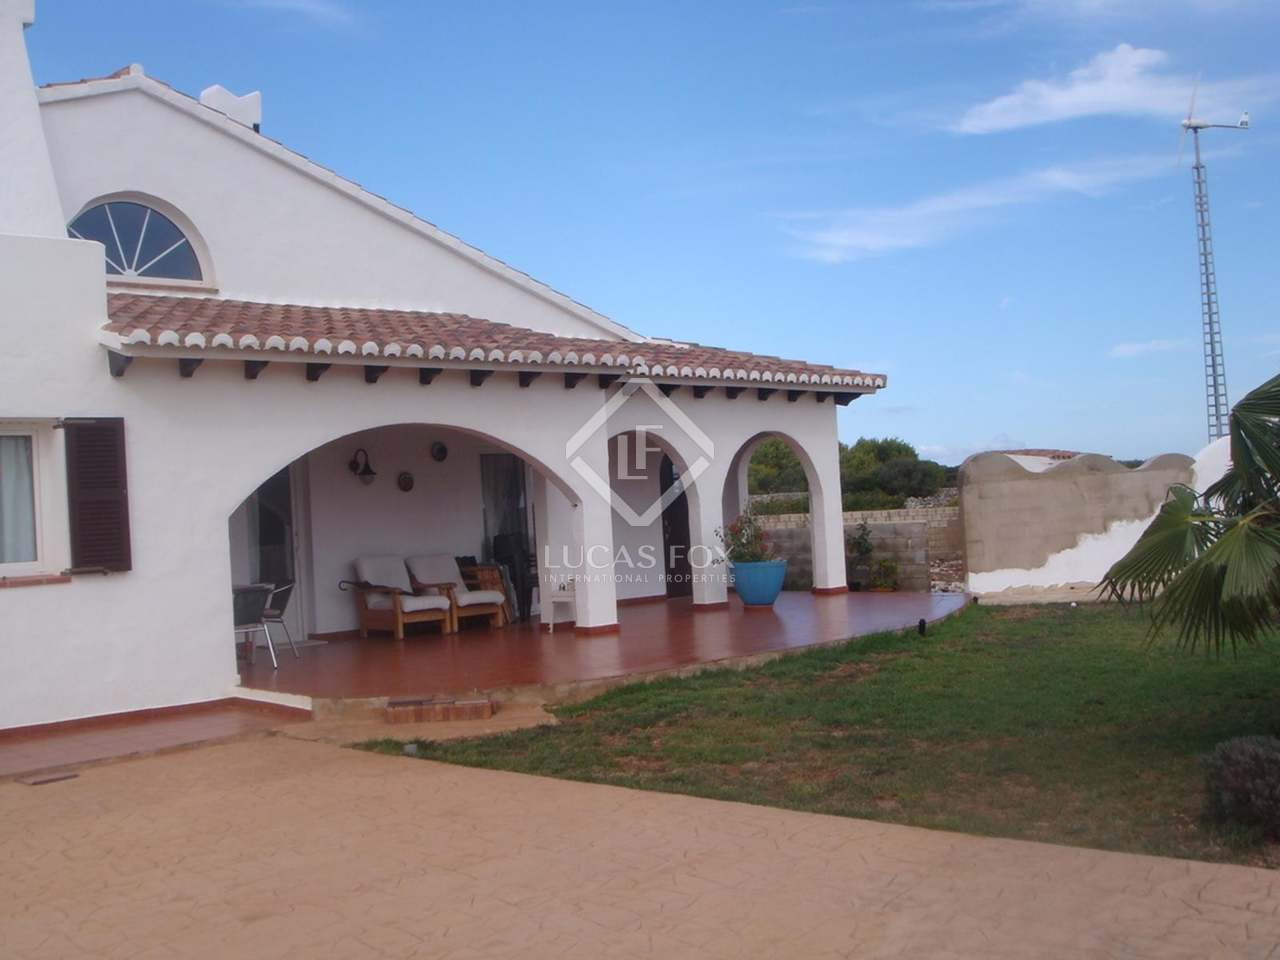 210 M 178 House With 2 500 M 178 Garden For Sale In Ciudadela